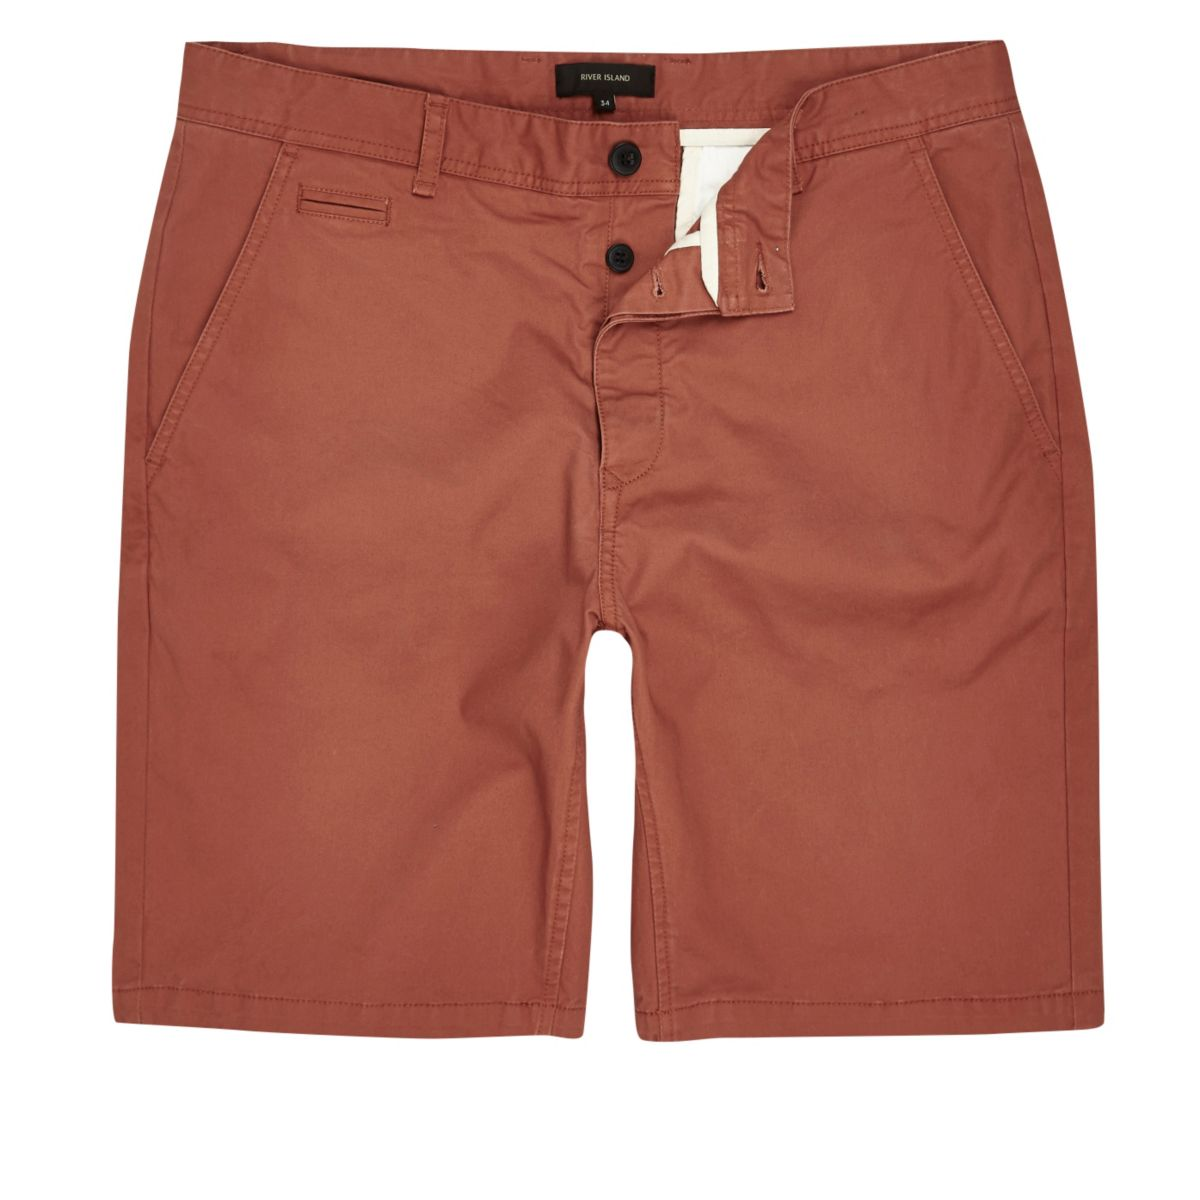 Orange slim fit shorts